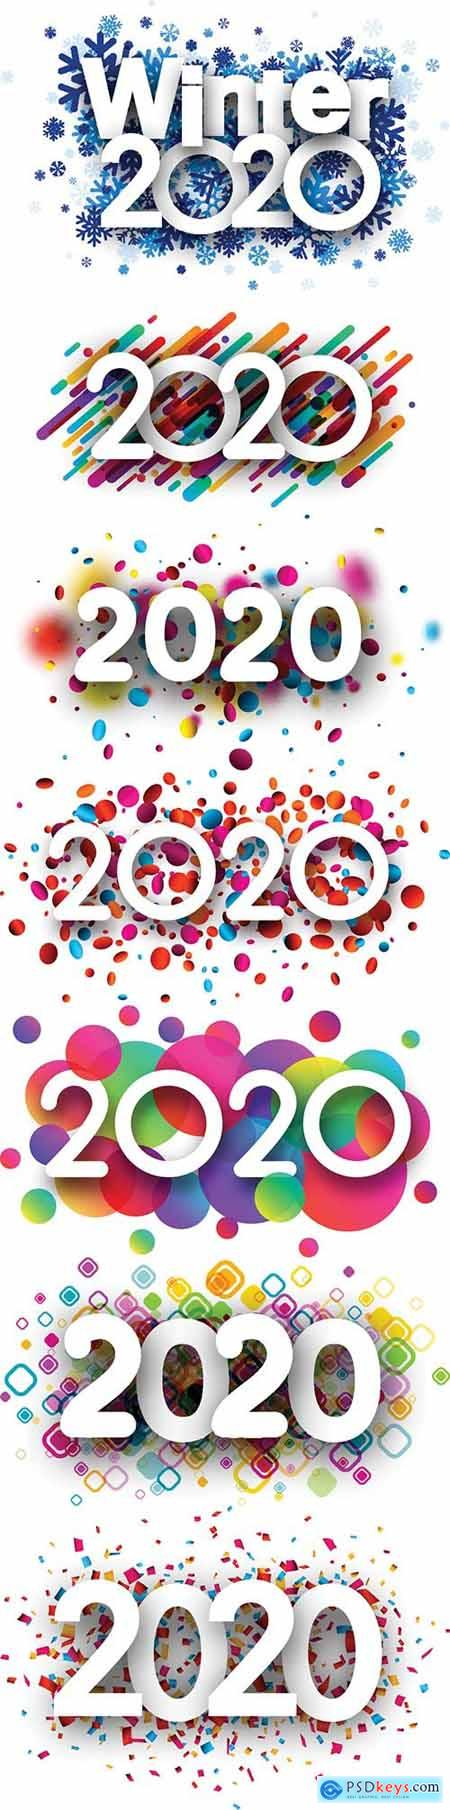 2020 new year sign with colorful round confetti on white